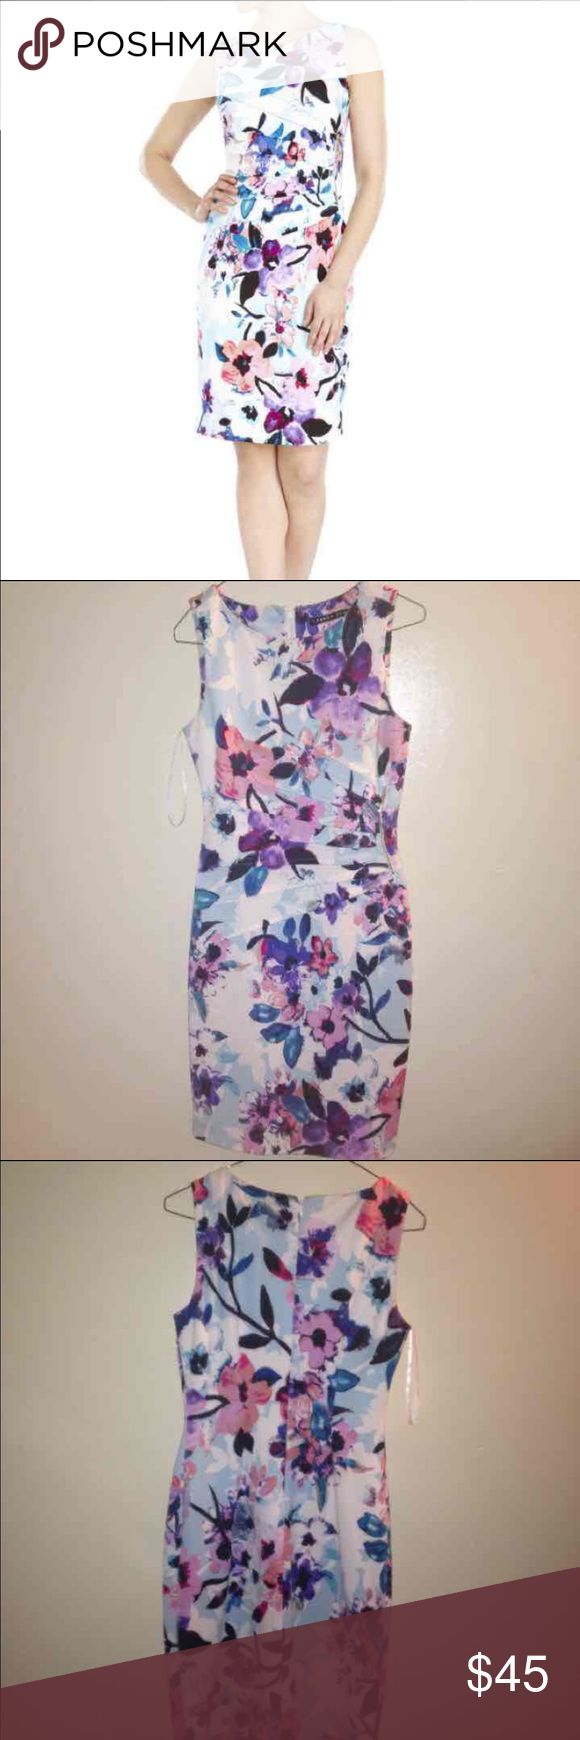 NWOT Ivank Trump floral dress Great for fancy events and weddings Very Cute, professional, and stylish  Bought for more than this price, and it's new, without tag FAST SHIPPING ⚡️ Ivanka Trump Dresses Midi